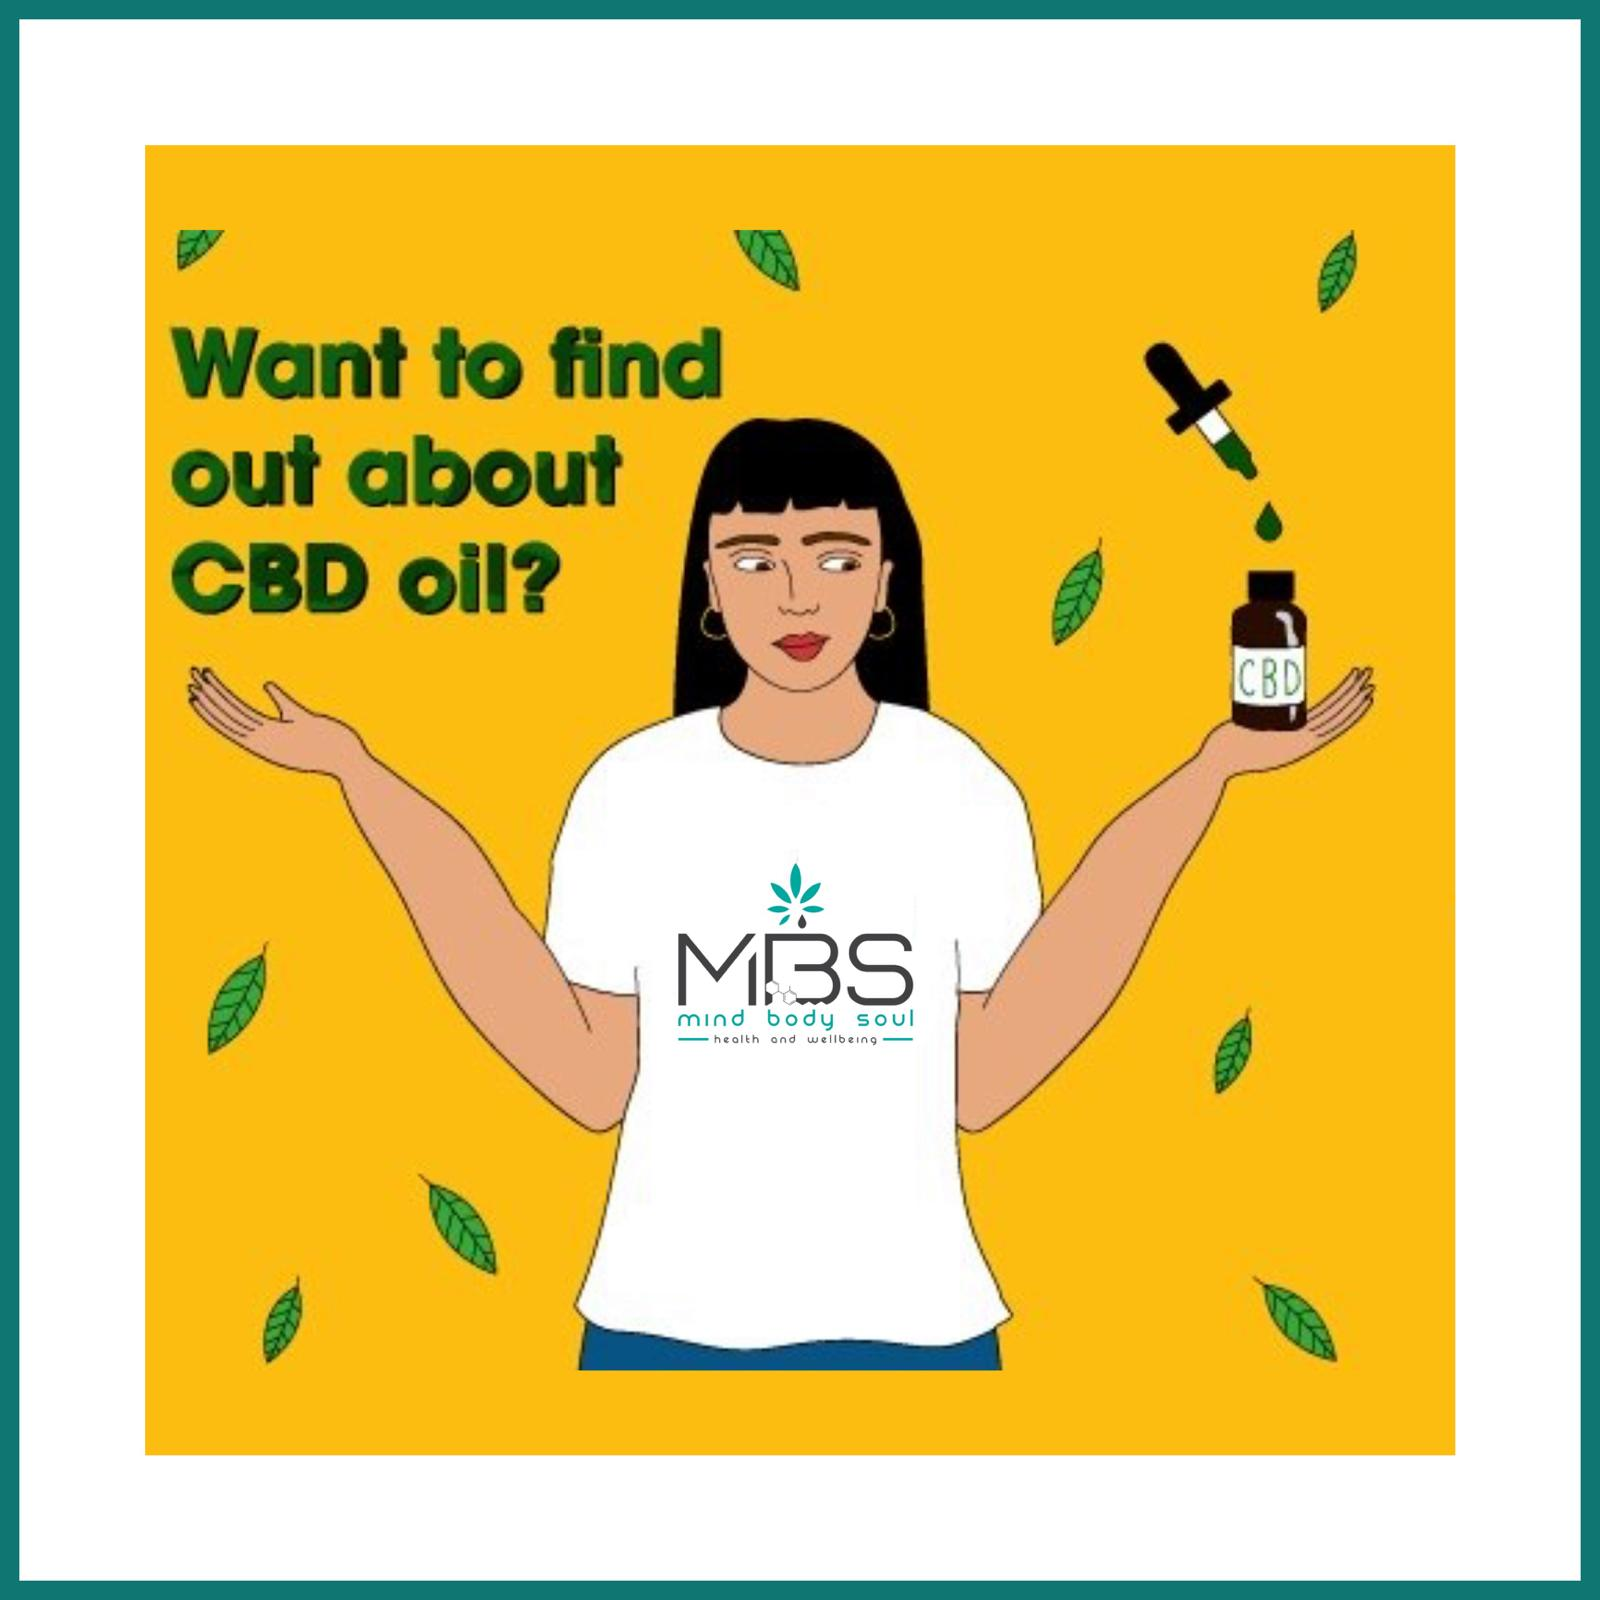 What to find out about CBD and its various benefits?